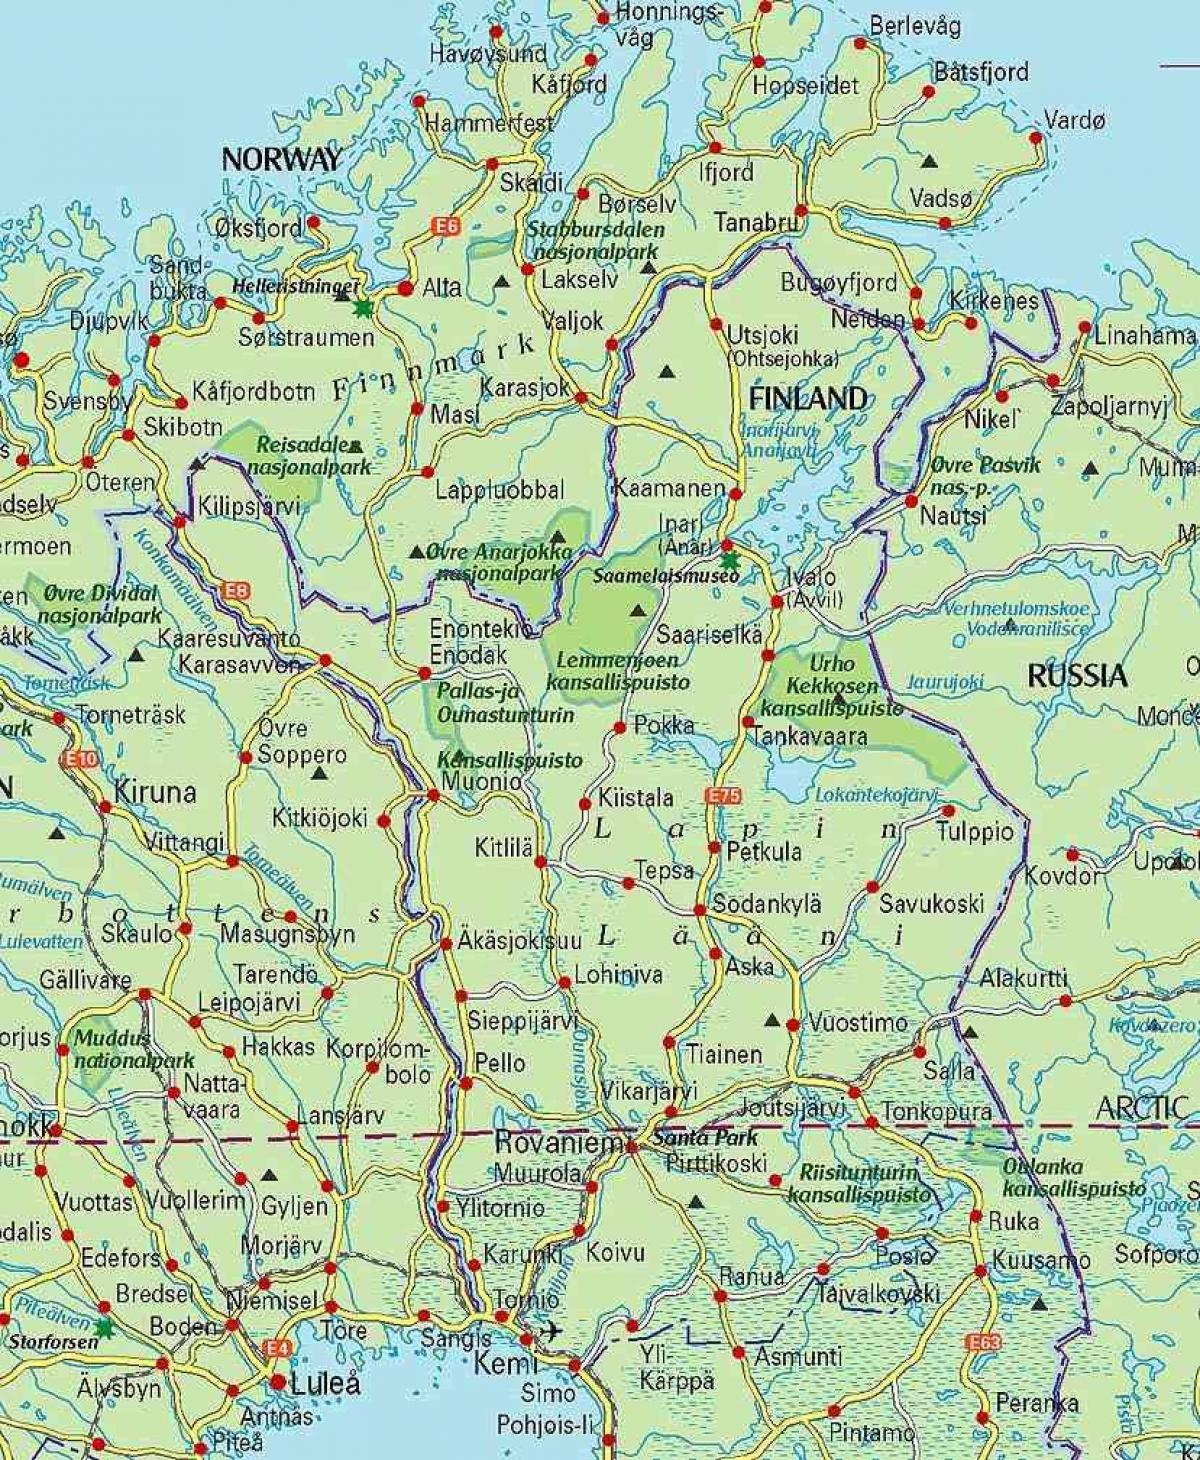 map of Finland and lapland